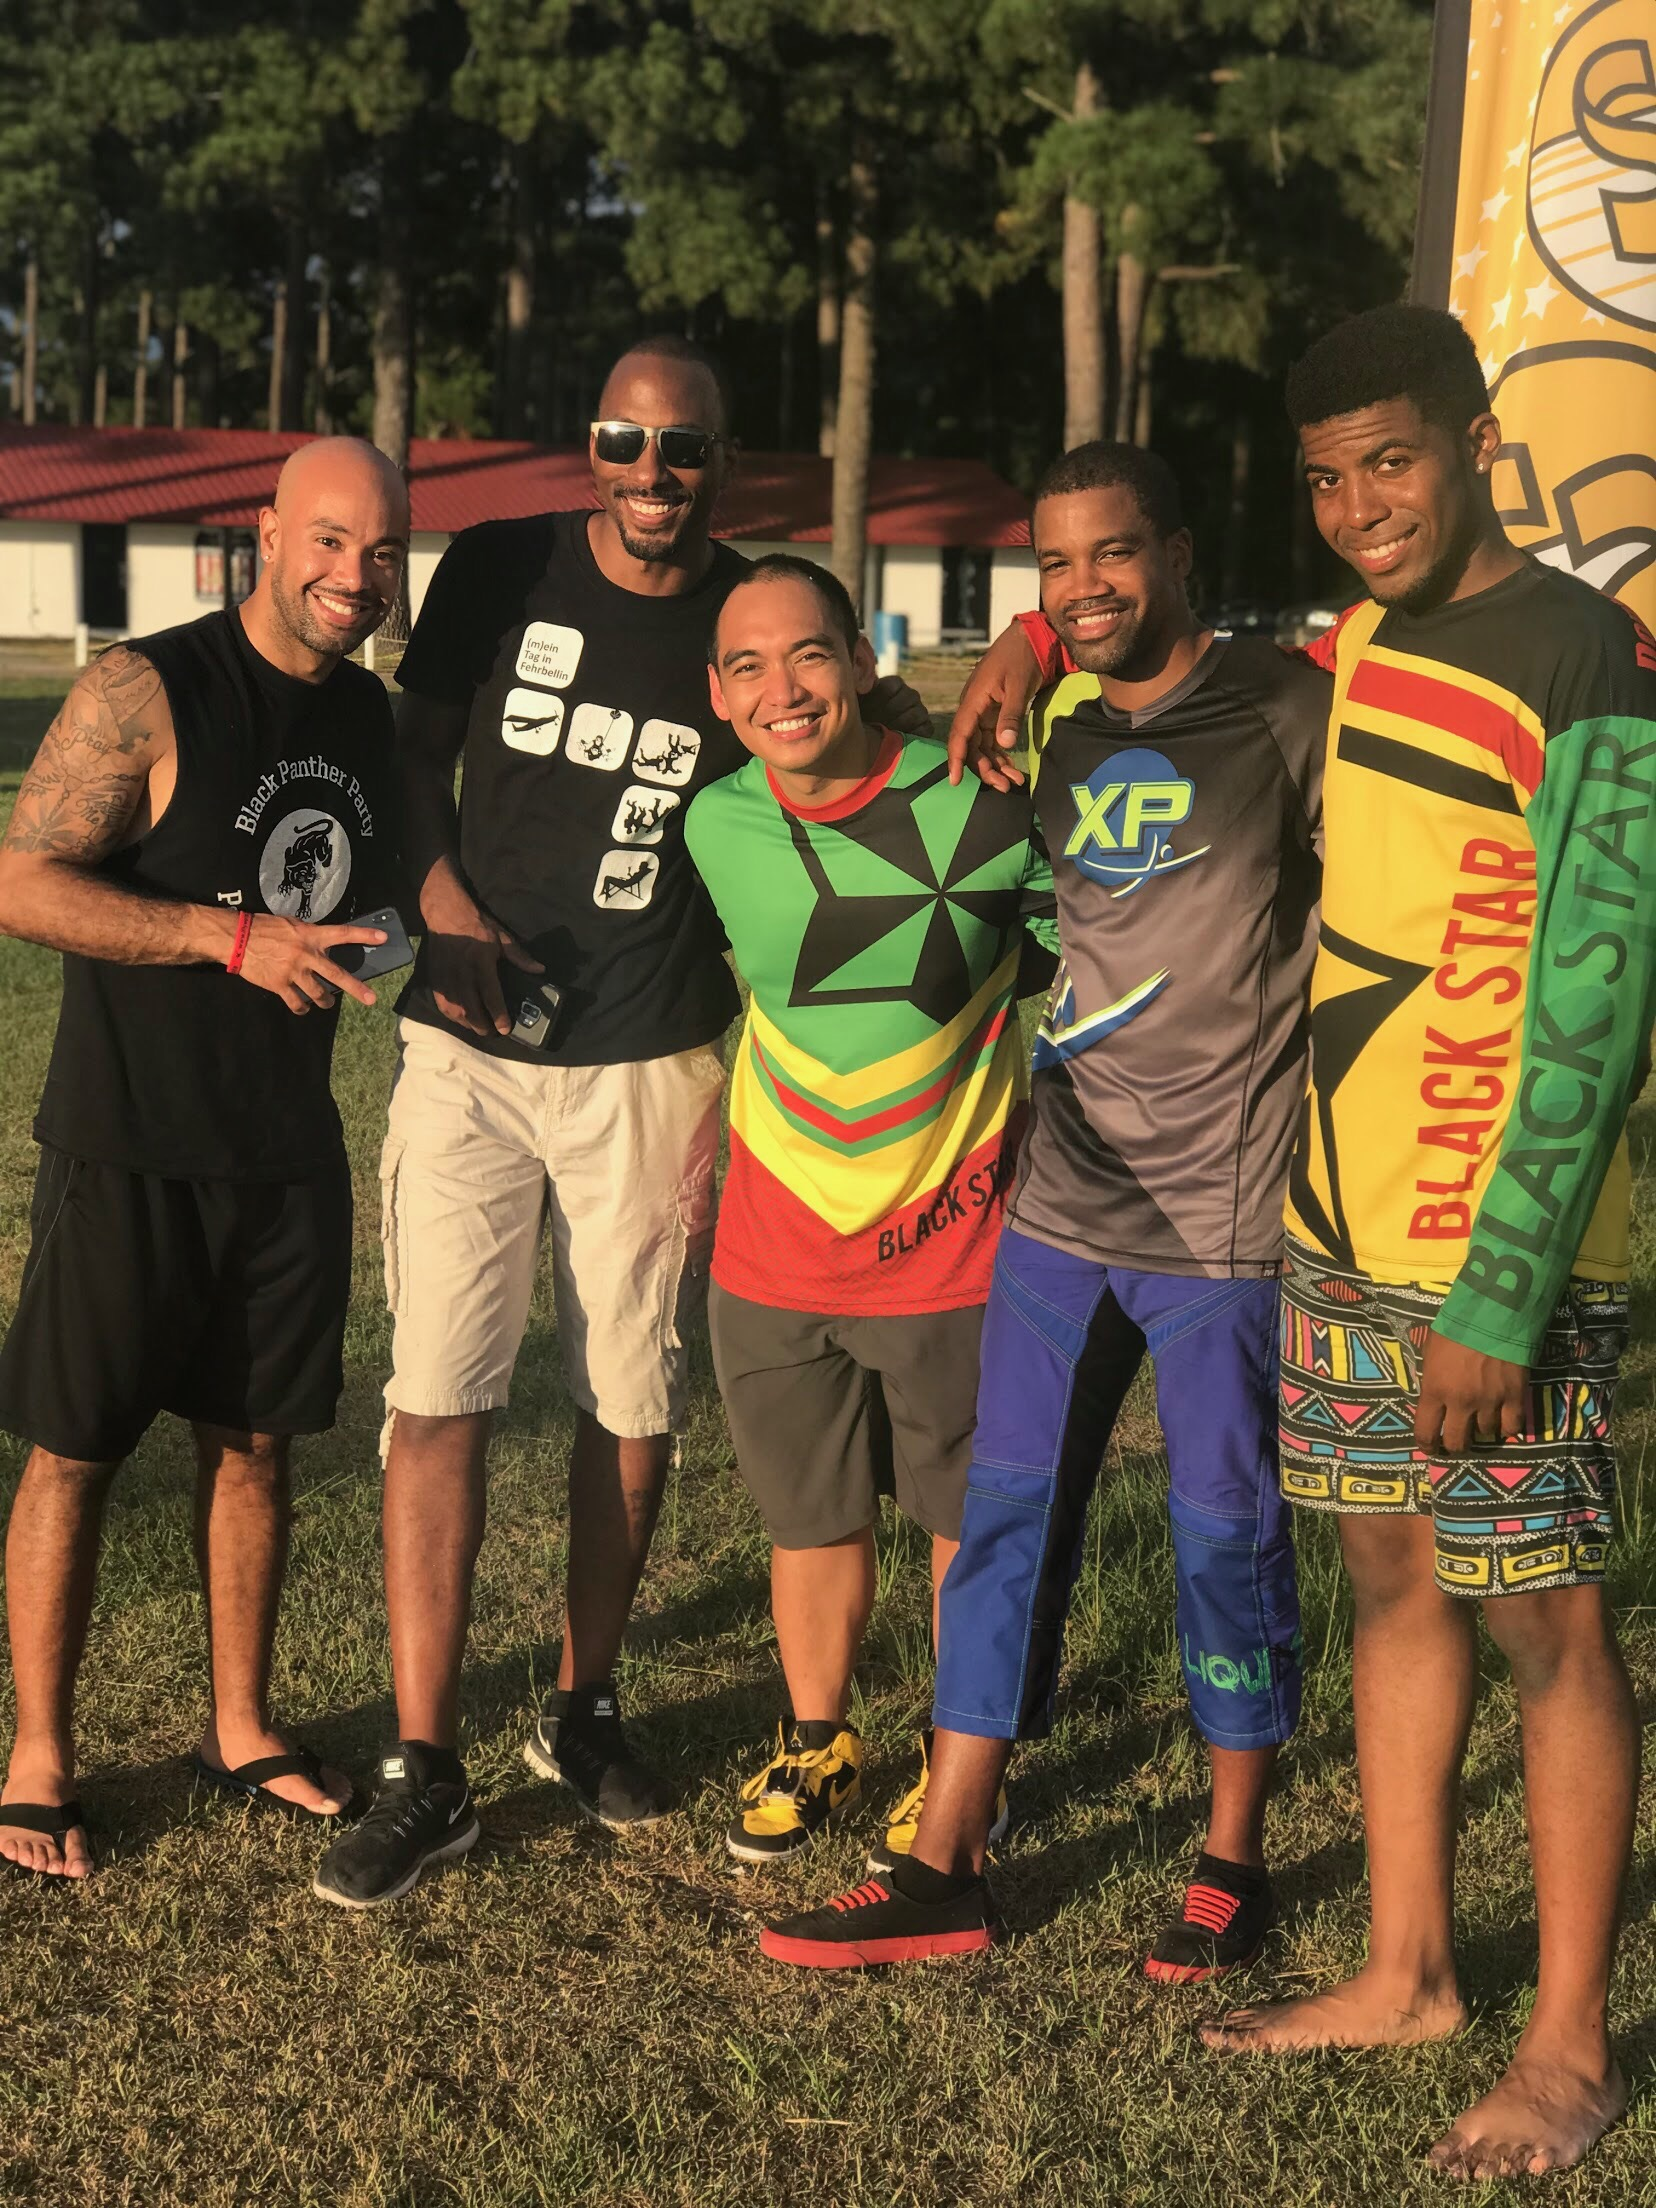 Nick (2nd from right) poses for a photo along with Team Blackstar skydivers at a recent meet-up in North Carolina.  Photo credit: Danielle Williams